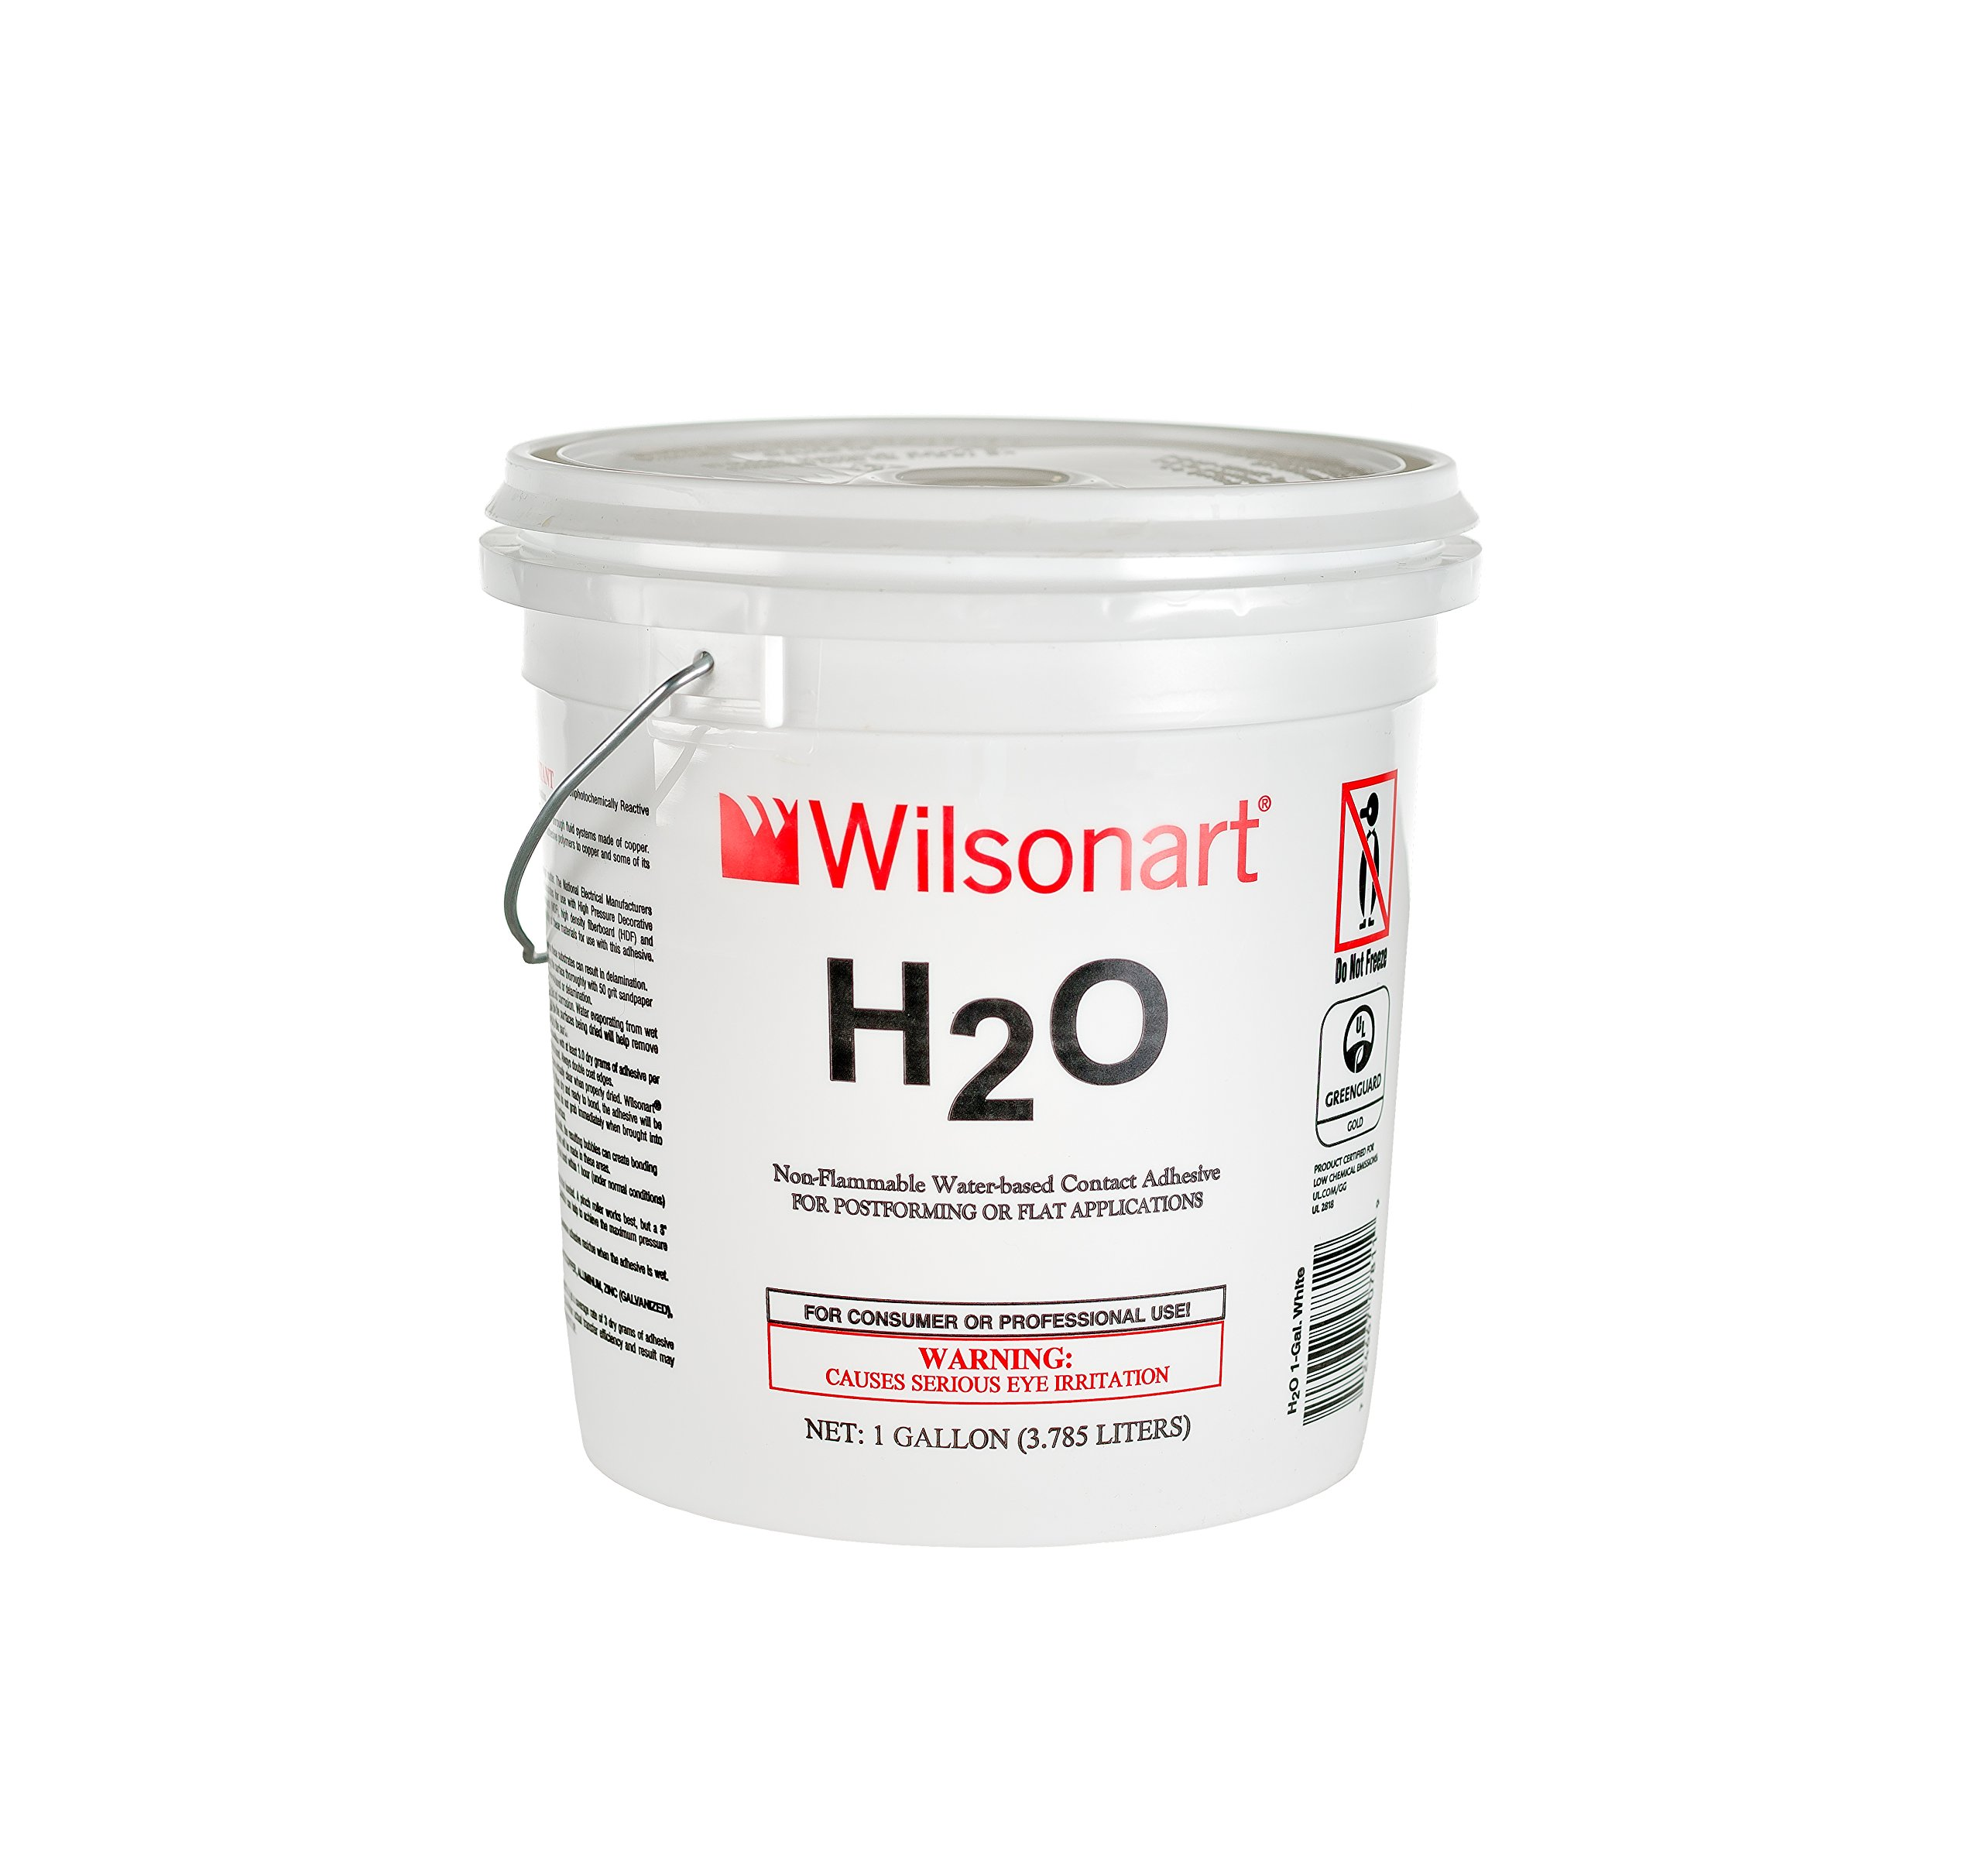 Wilsonart H2O Water-Based Low VOC Nonflammable Contact Adhesive - 1 Gallon